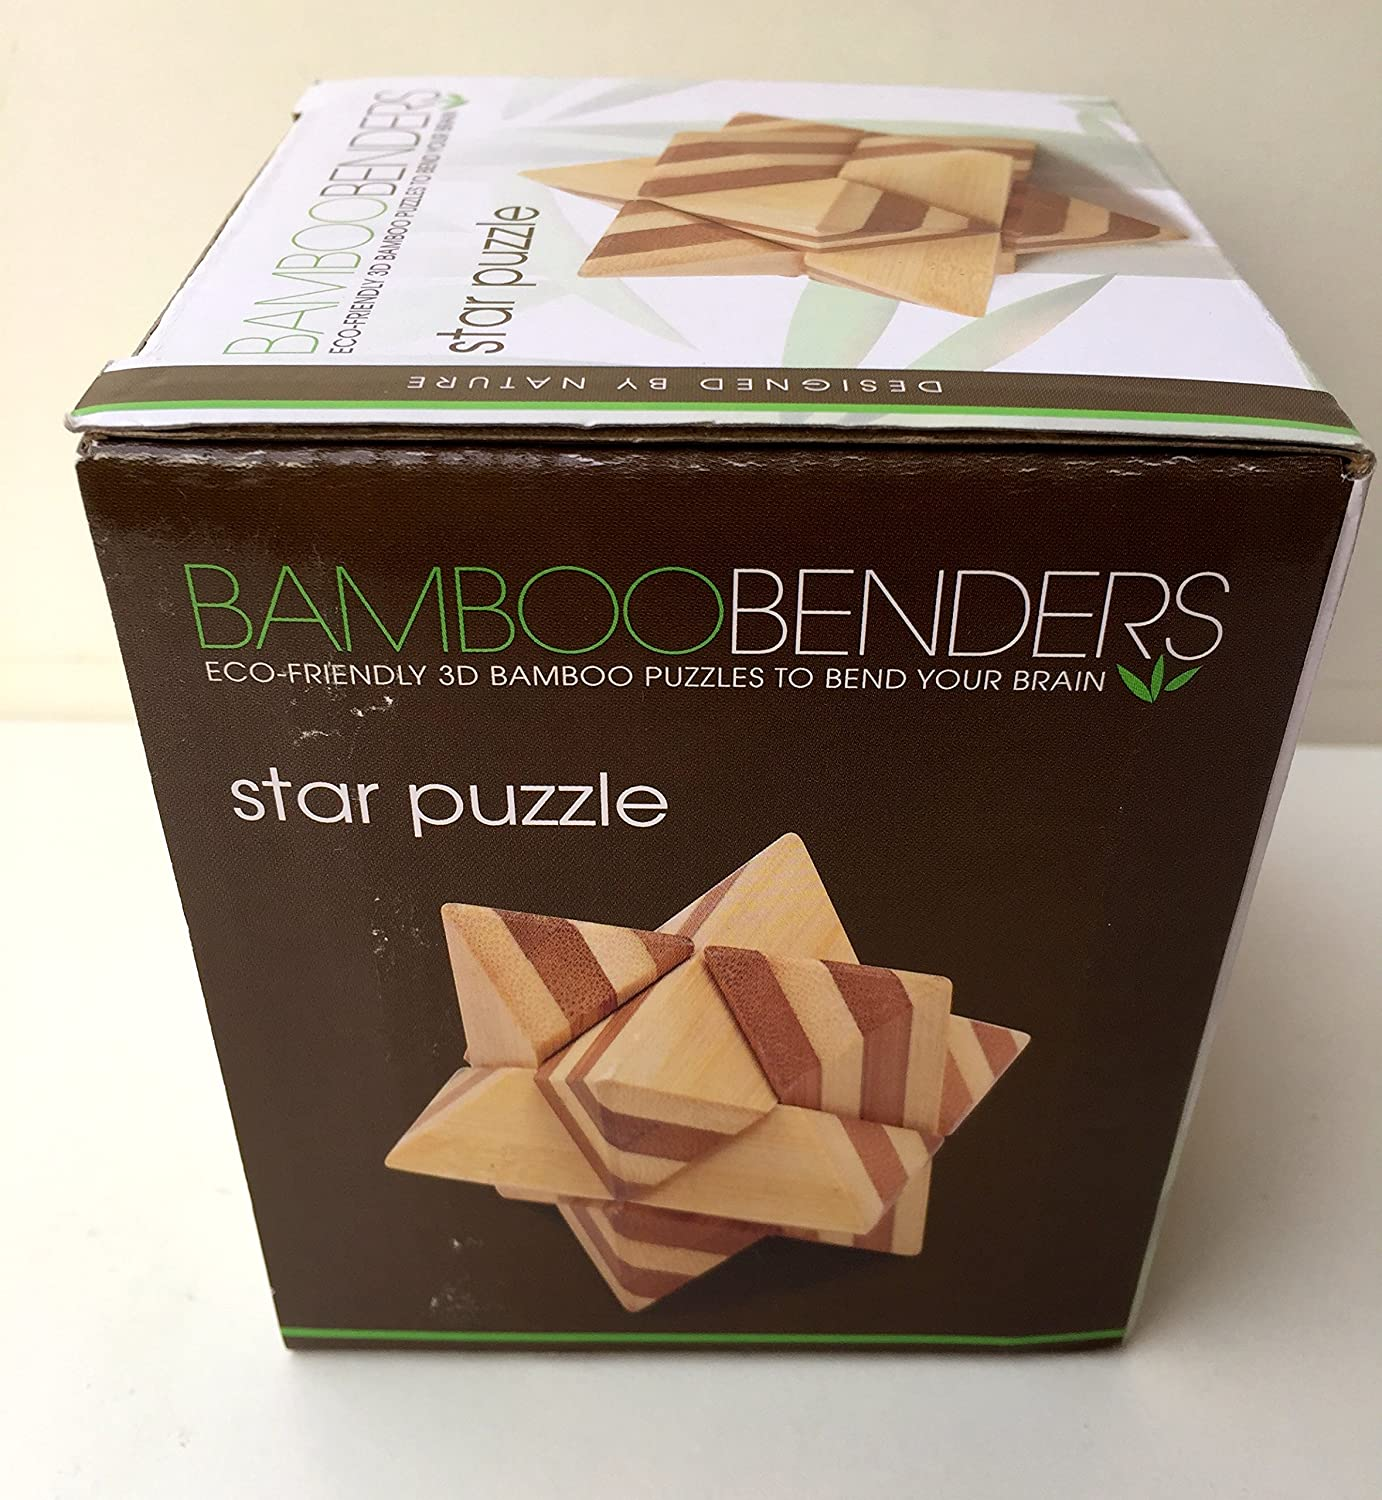 Bamboo Benders Eco-Friendly 3D Bamboo Star Puzzle